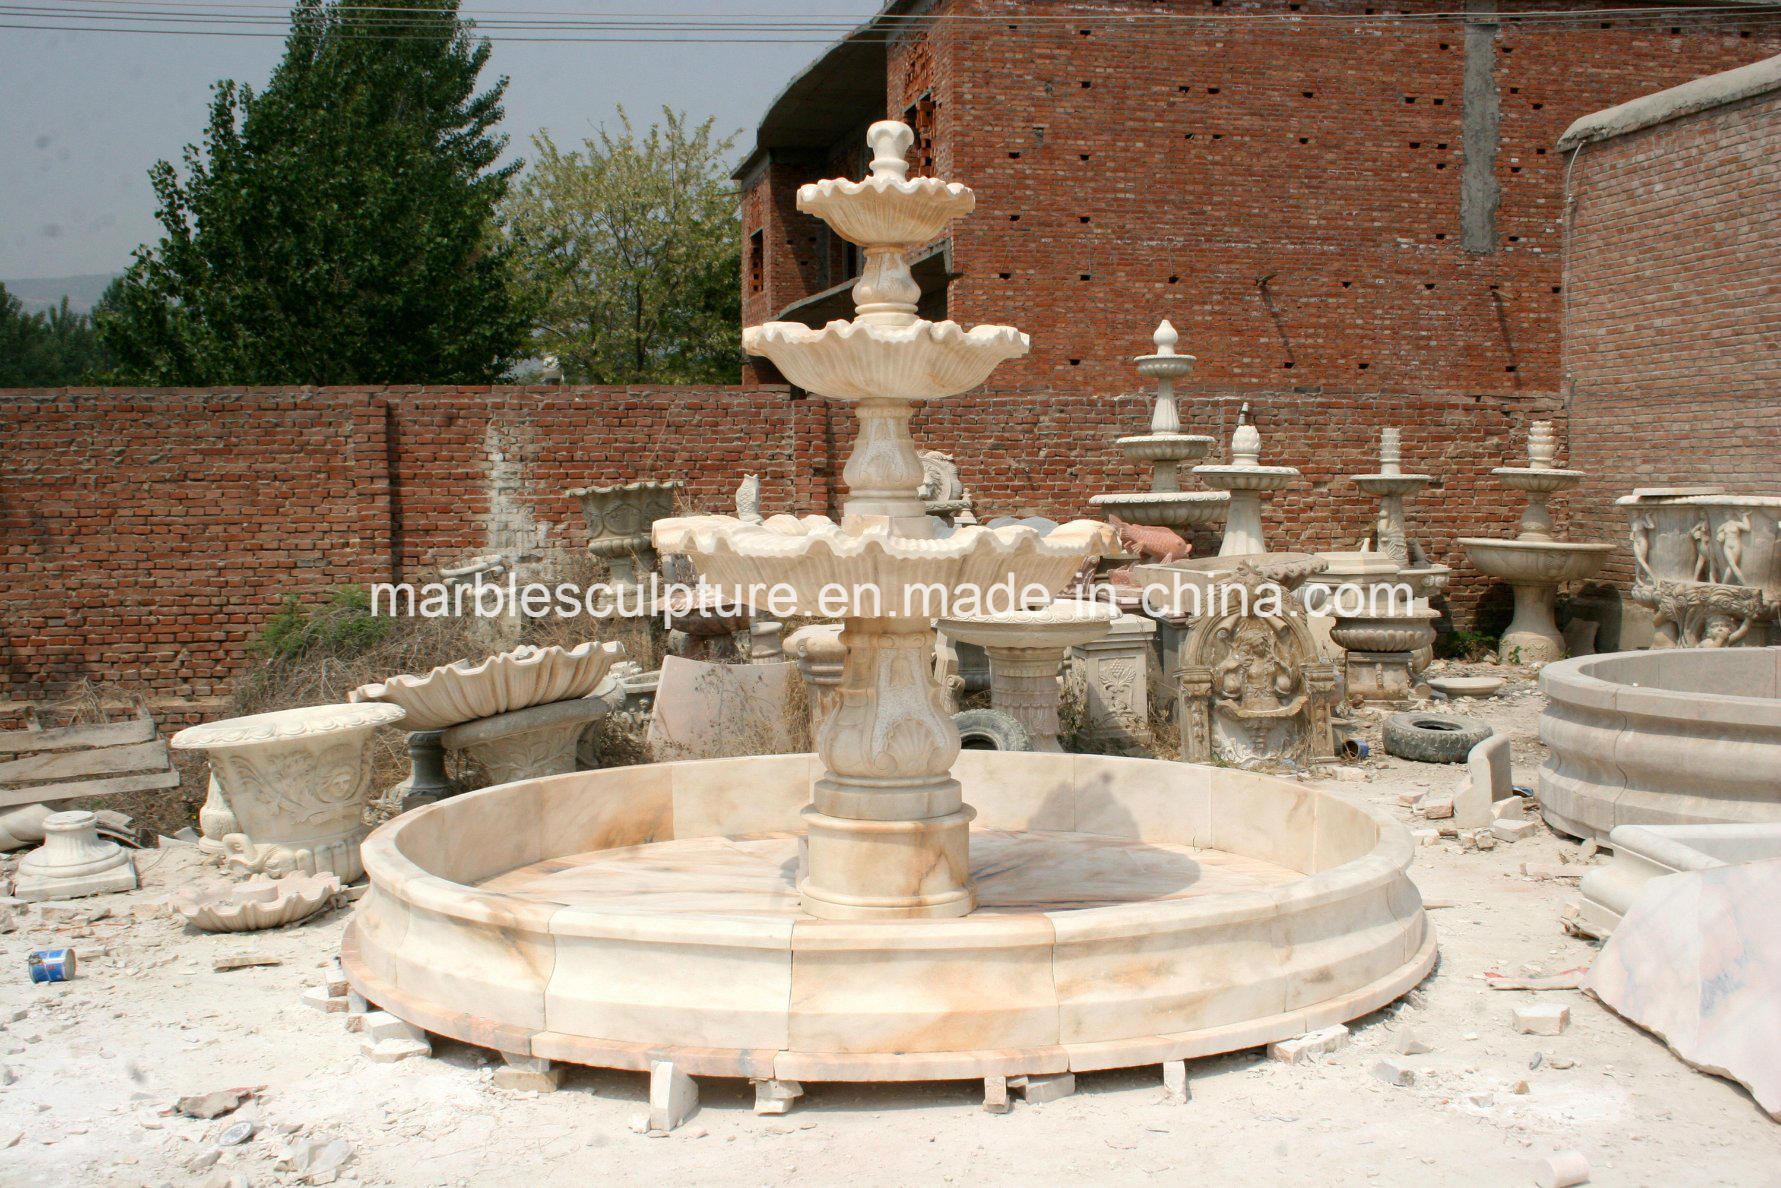 Three Tier Home Garden Marble Water Fountain for Sale (SY-F105)